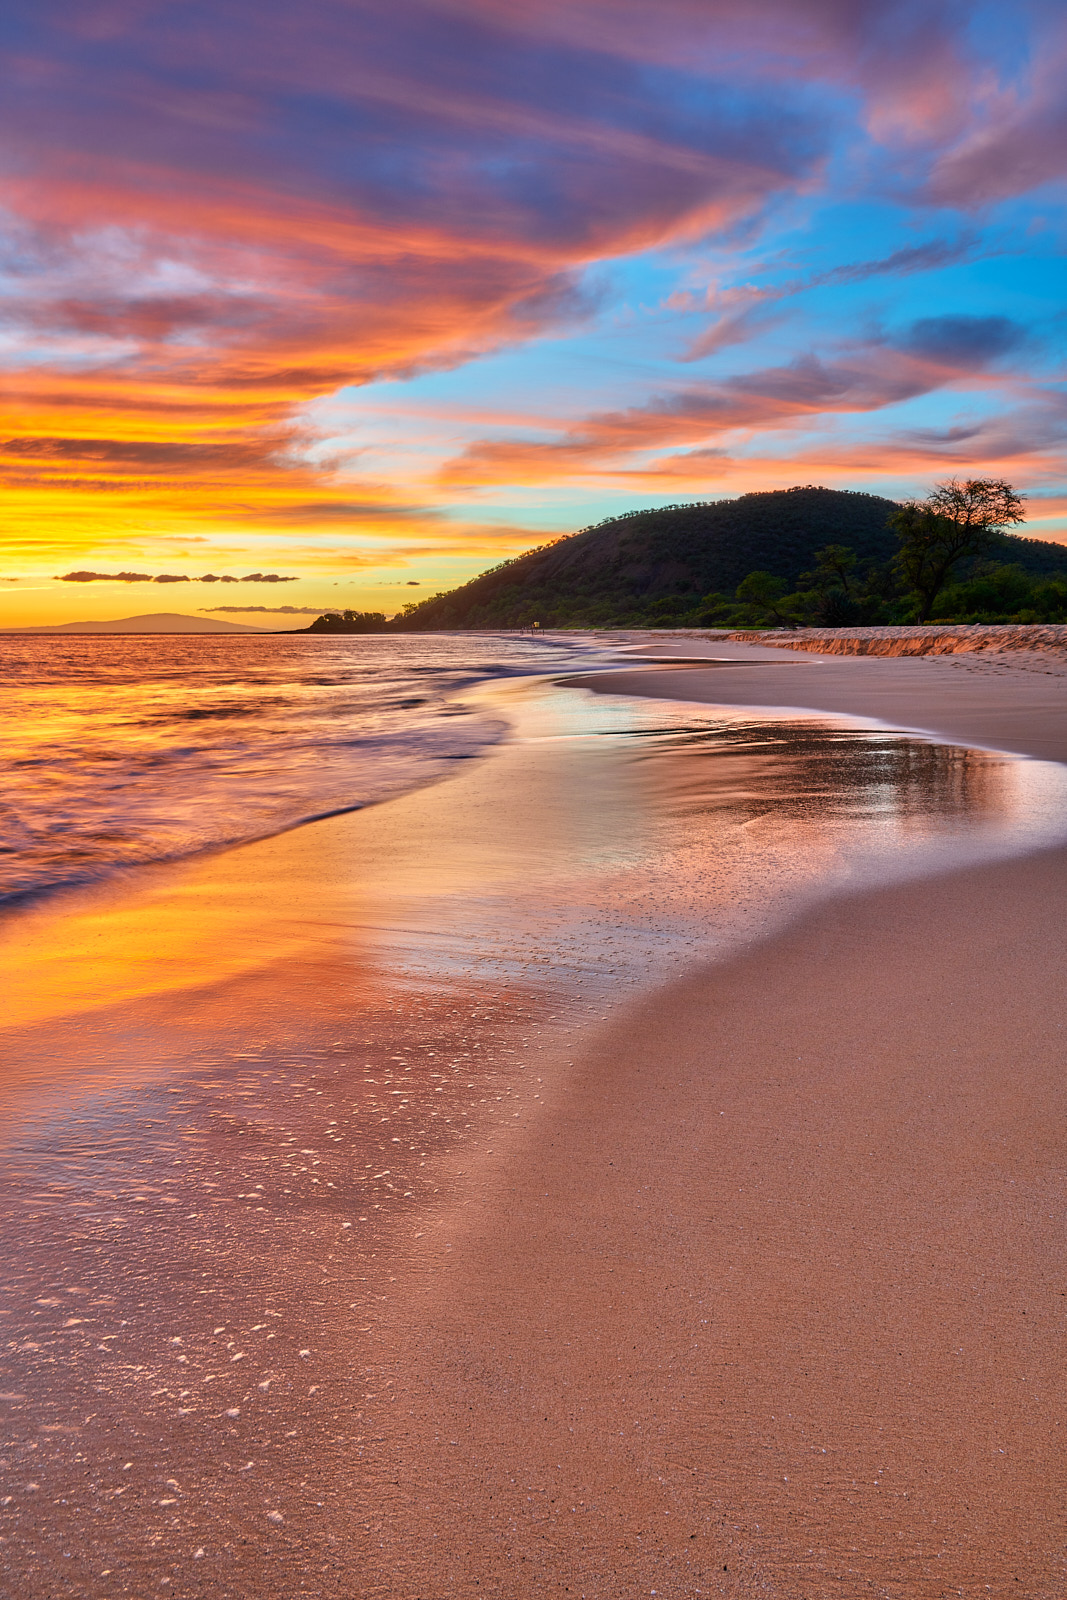 vertical photograph of sunset at Big Beach at Makena State Park in Maui, Hawaii.   The sunset clouds seems to mirror the incoming waves on the beach